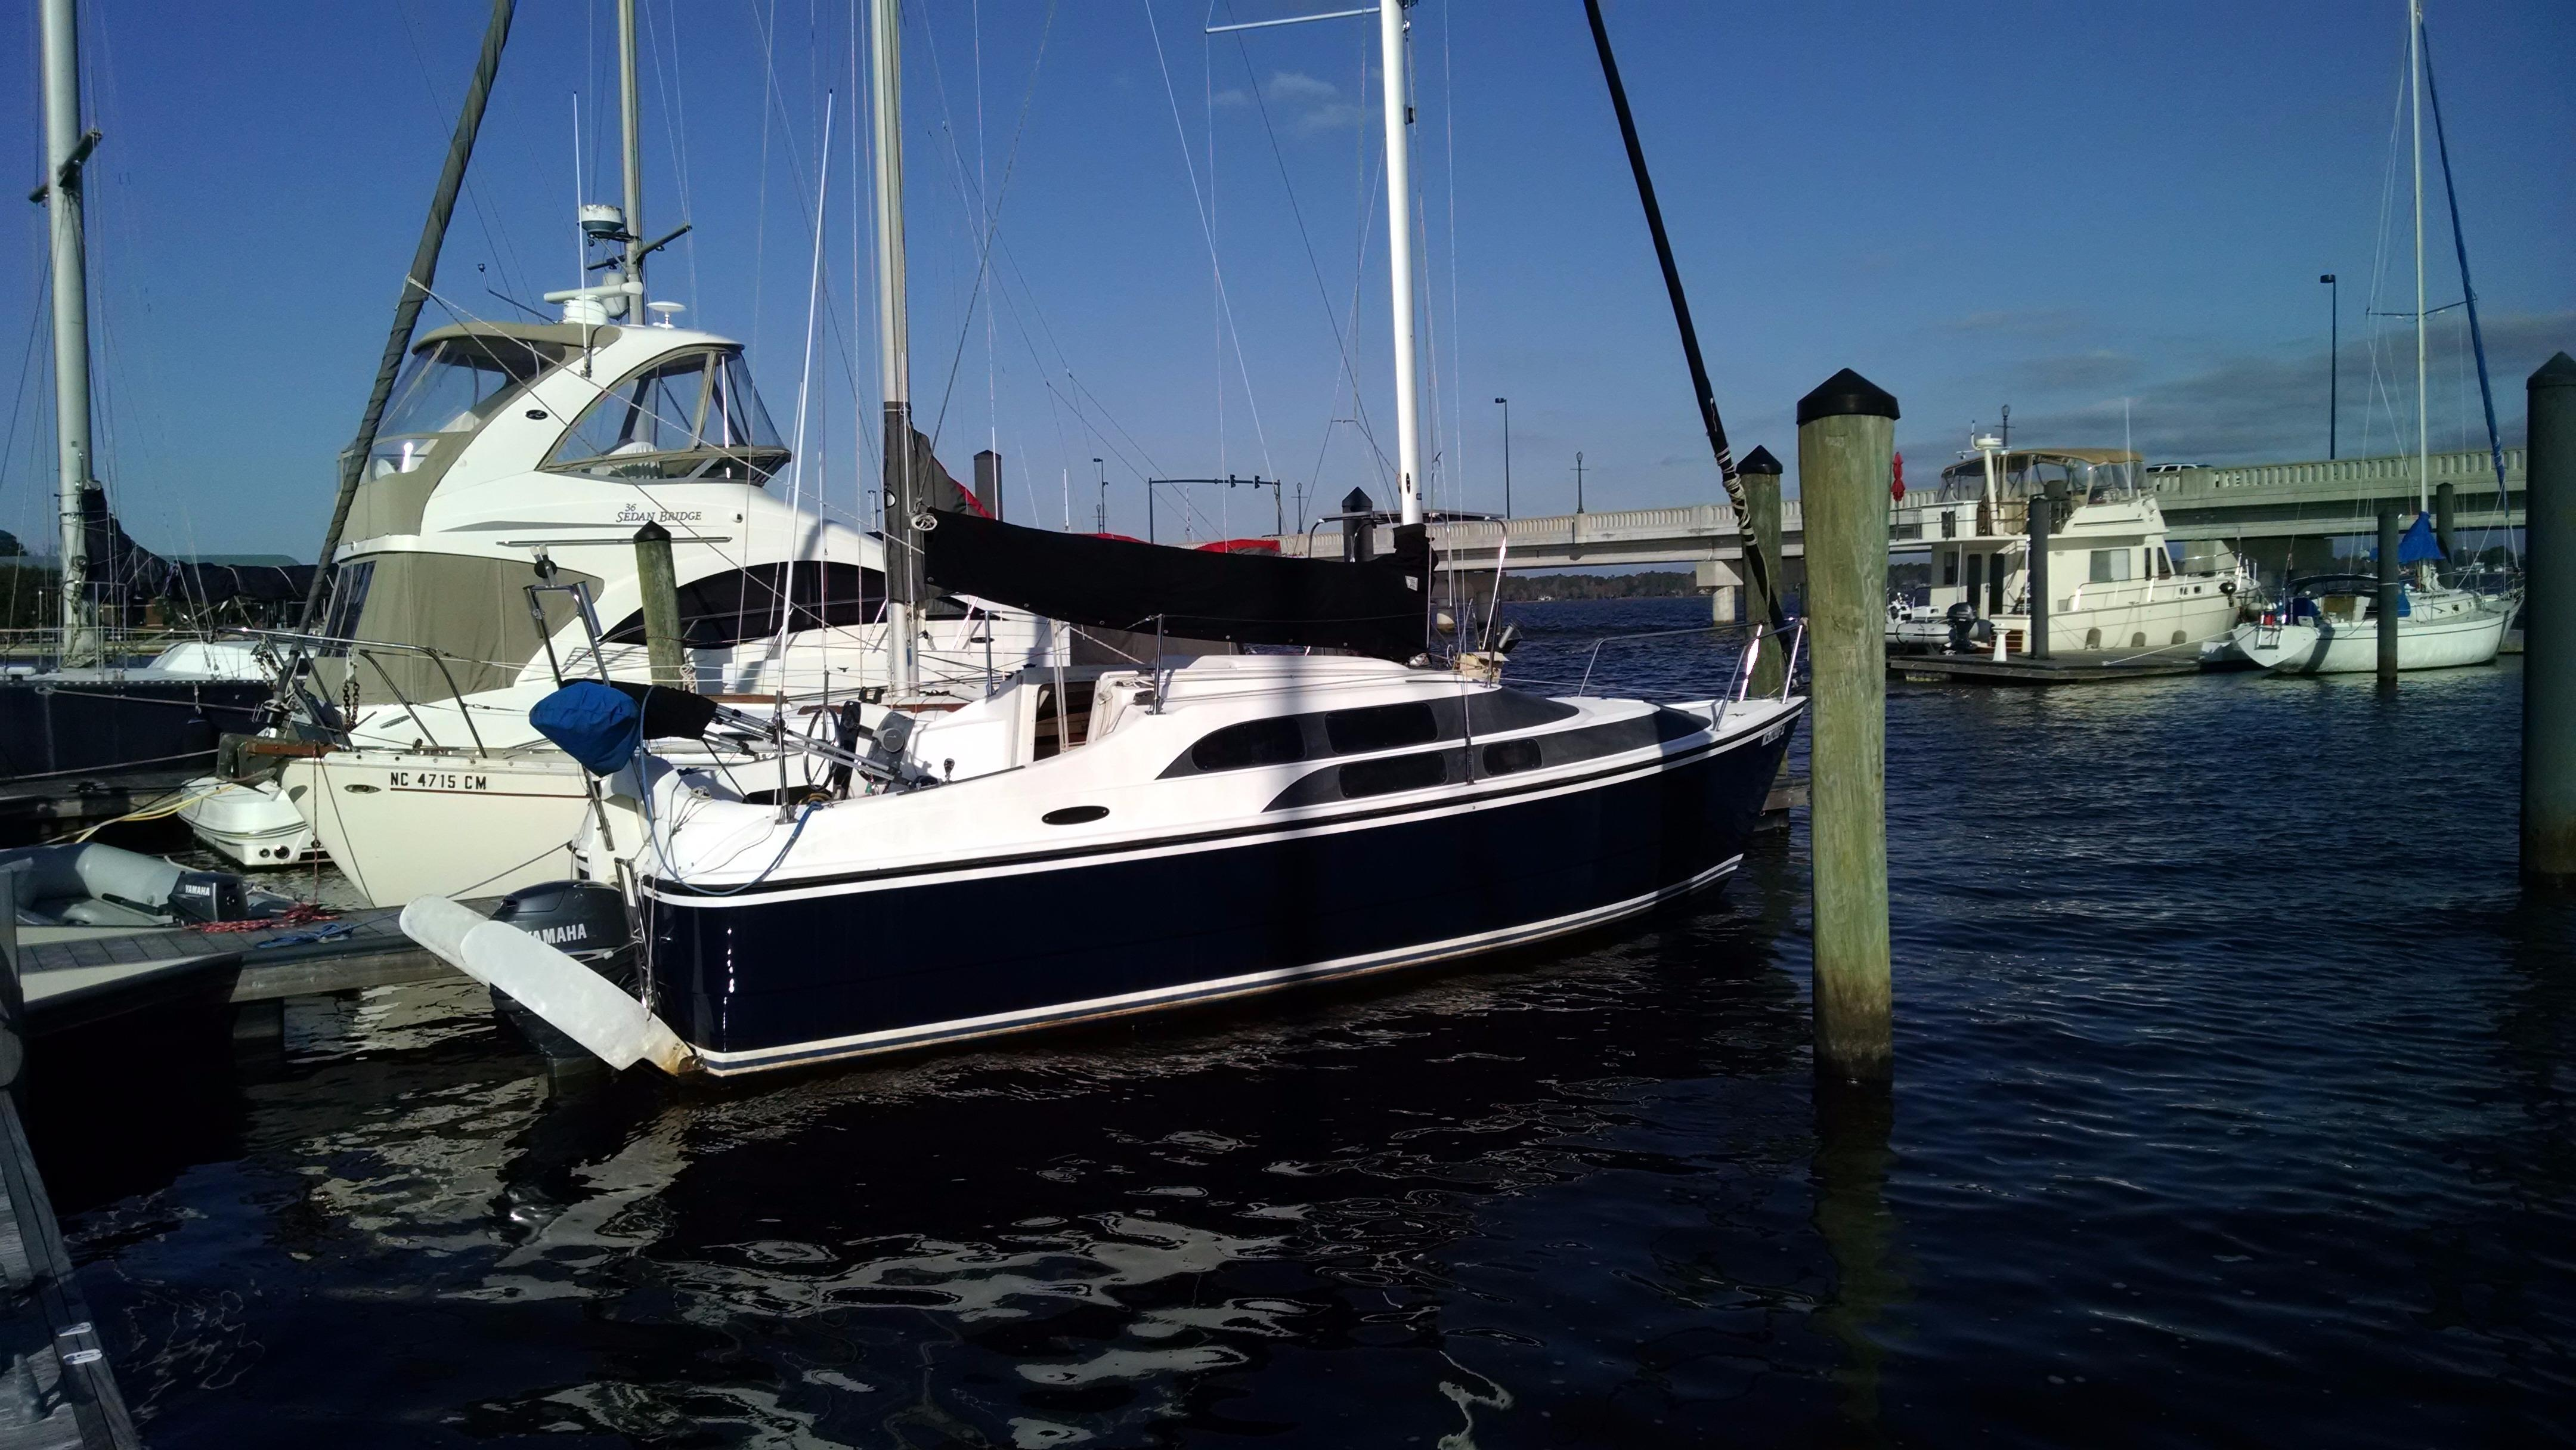 New Bern (NC) United States  city pictures gallery : 2006 Macgregor 26M Sail Boat For Sale www.yachtworld.com